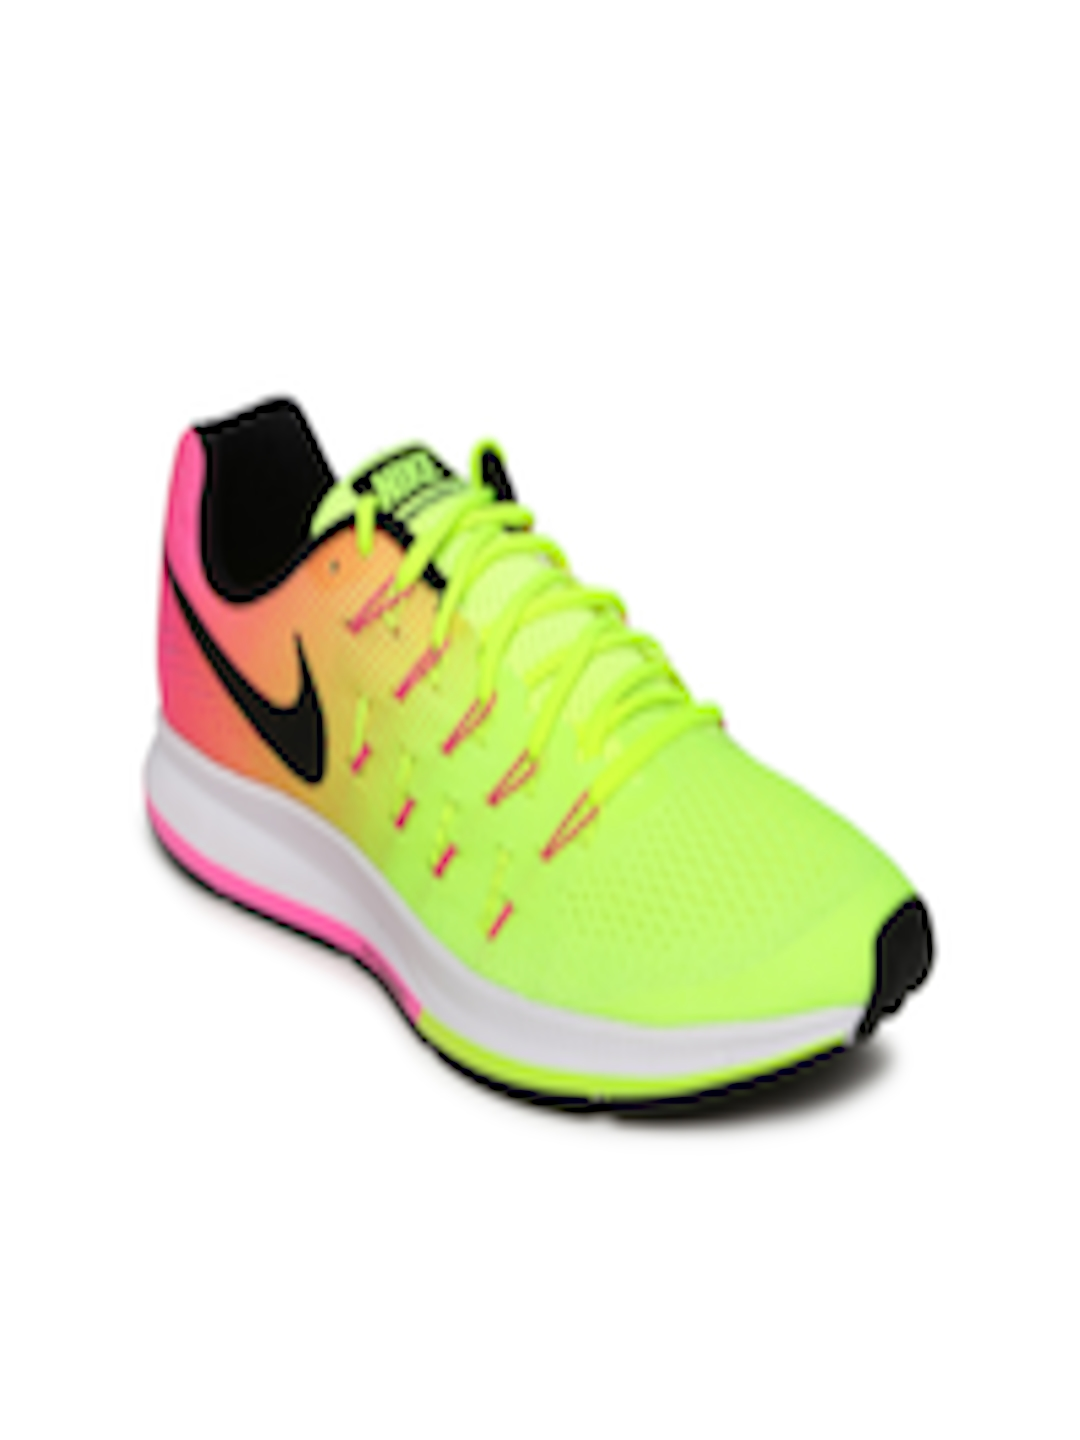 Buy Nike Women Fluorescent Green & Pink AIR ZOOM PEGASUS 33 OC Running Shoes Footwear for Women